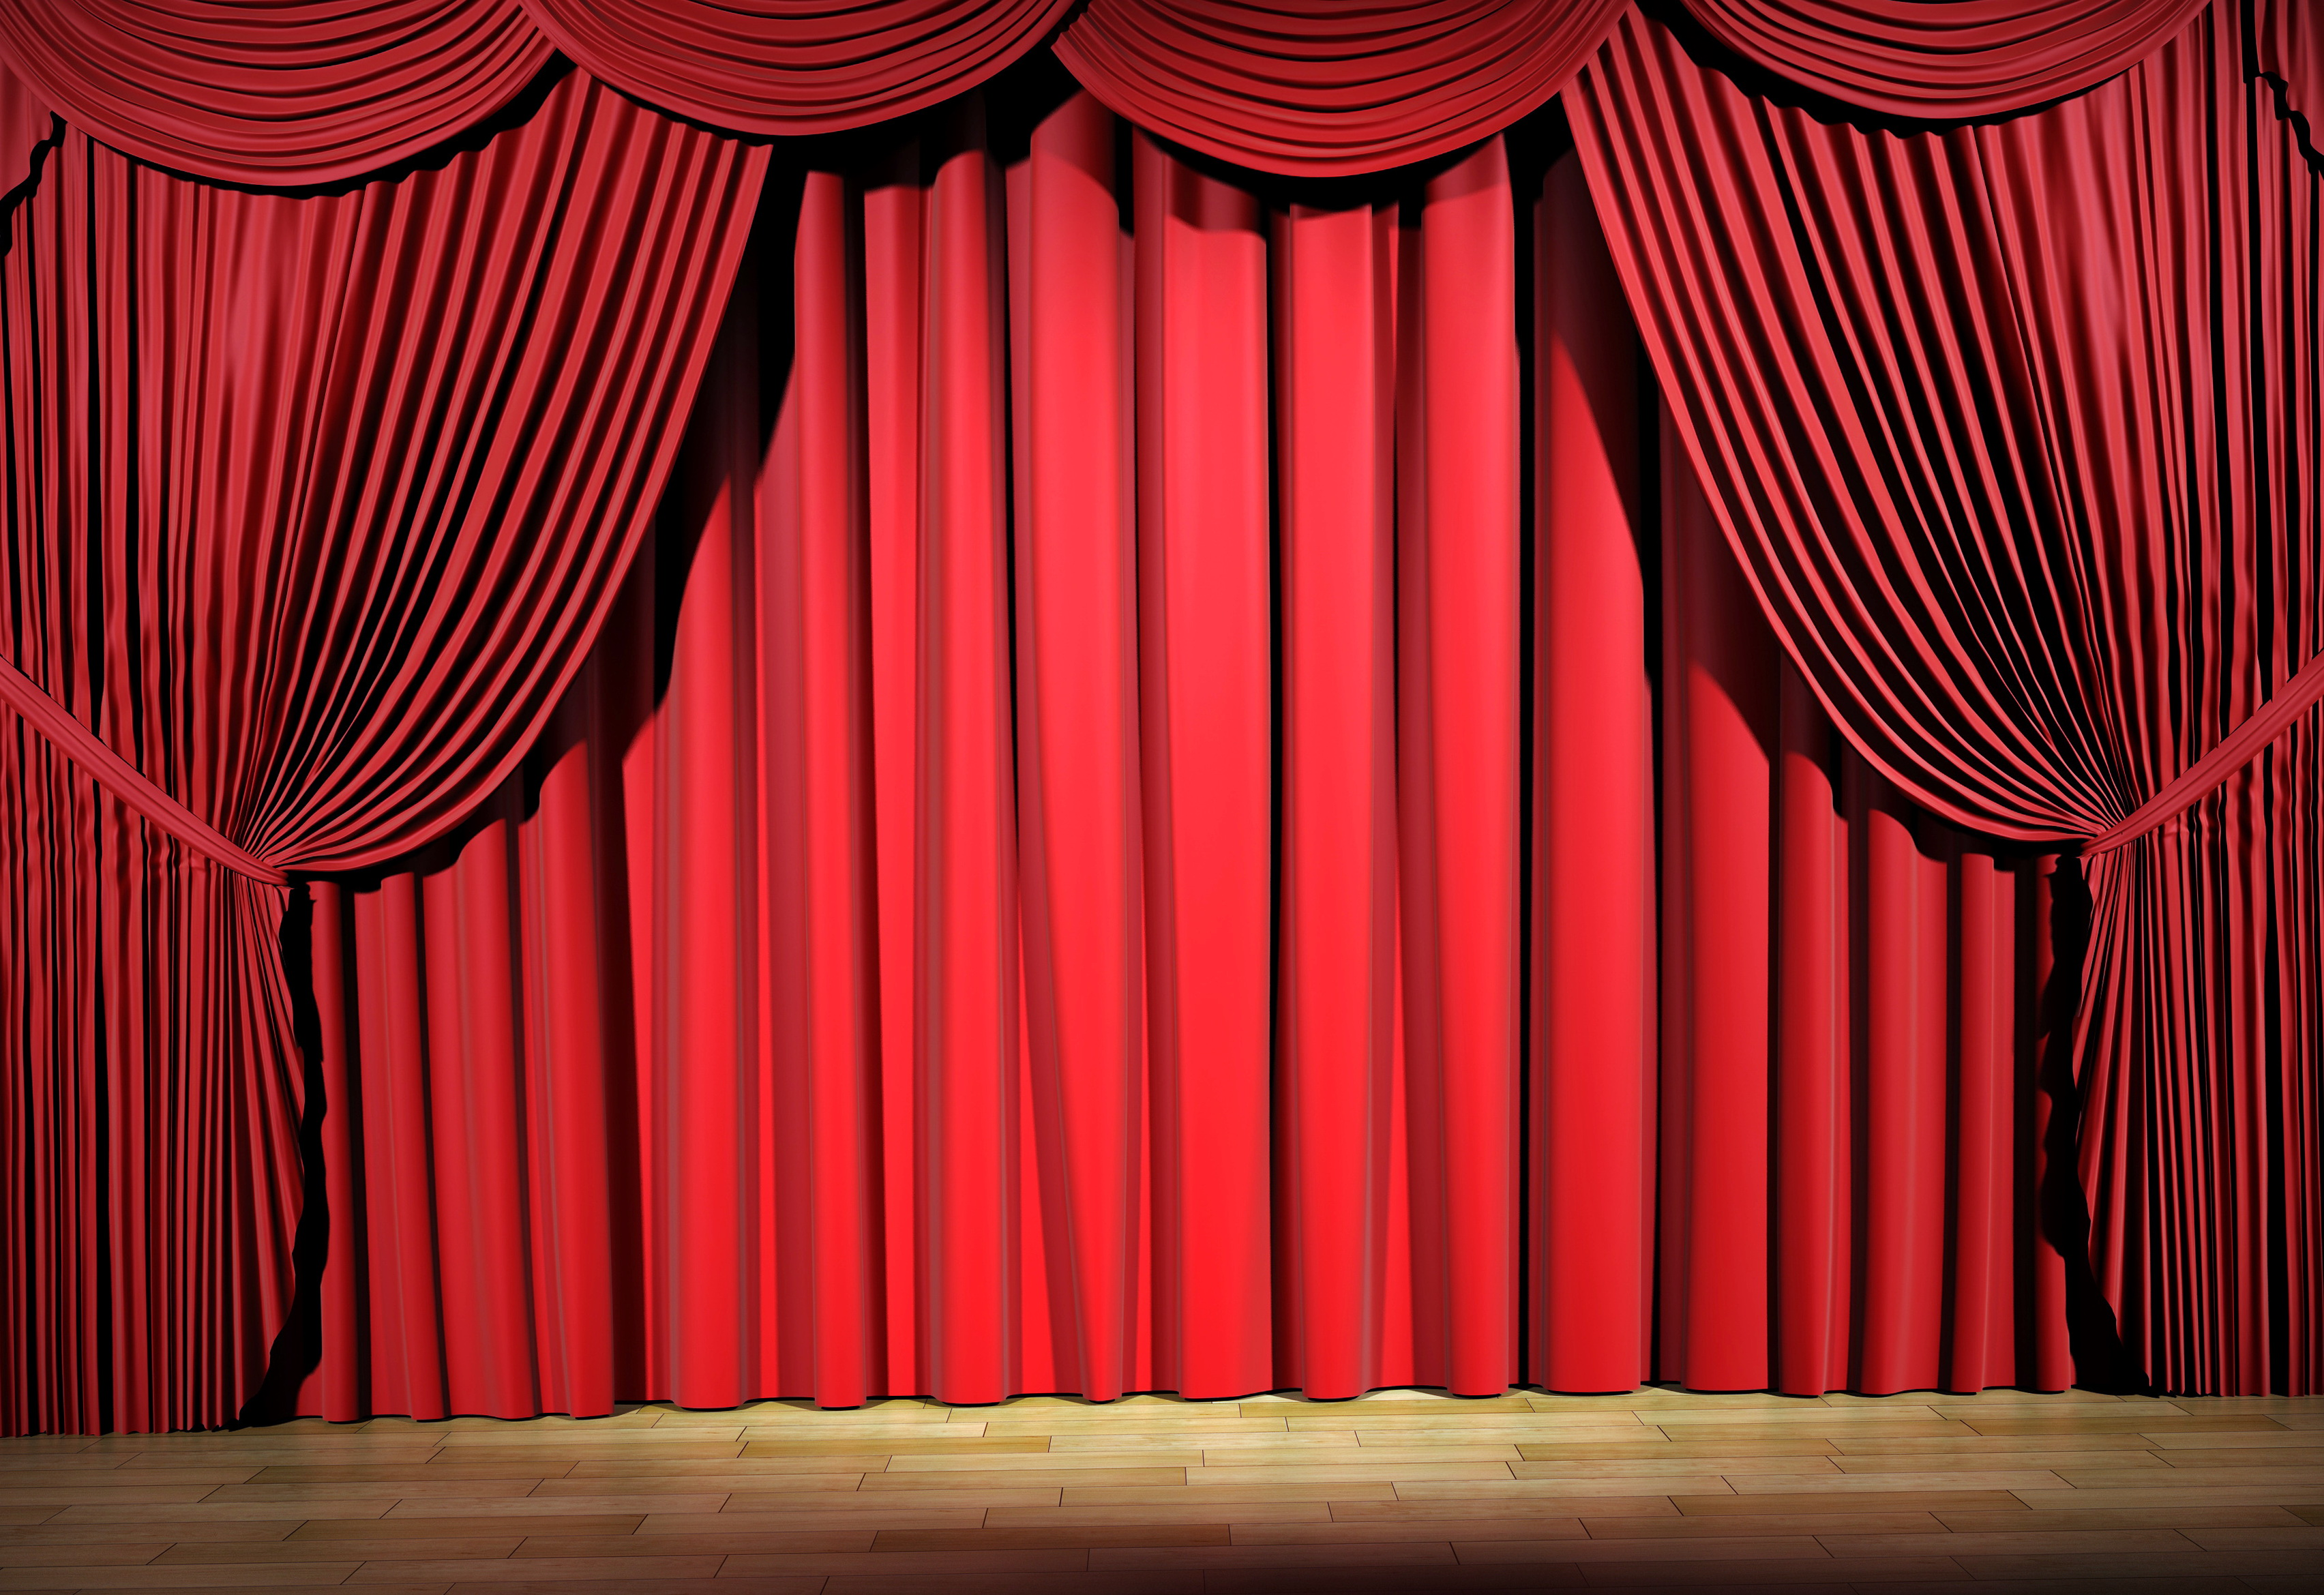 Red Ds And Curtains | Home Design Ideas Home Theater Design Ideas With Red Curtain on red bedroom design ideas, home theater entrance ideas, home theater layout ideas, red interior design ideas, home theater wiring ideas, red garage design ideas, red room design ideas, red bathroom design ideas, red fireplace design ideas, red office design ideas, home movie theater ideas,